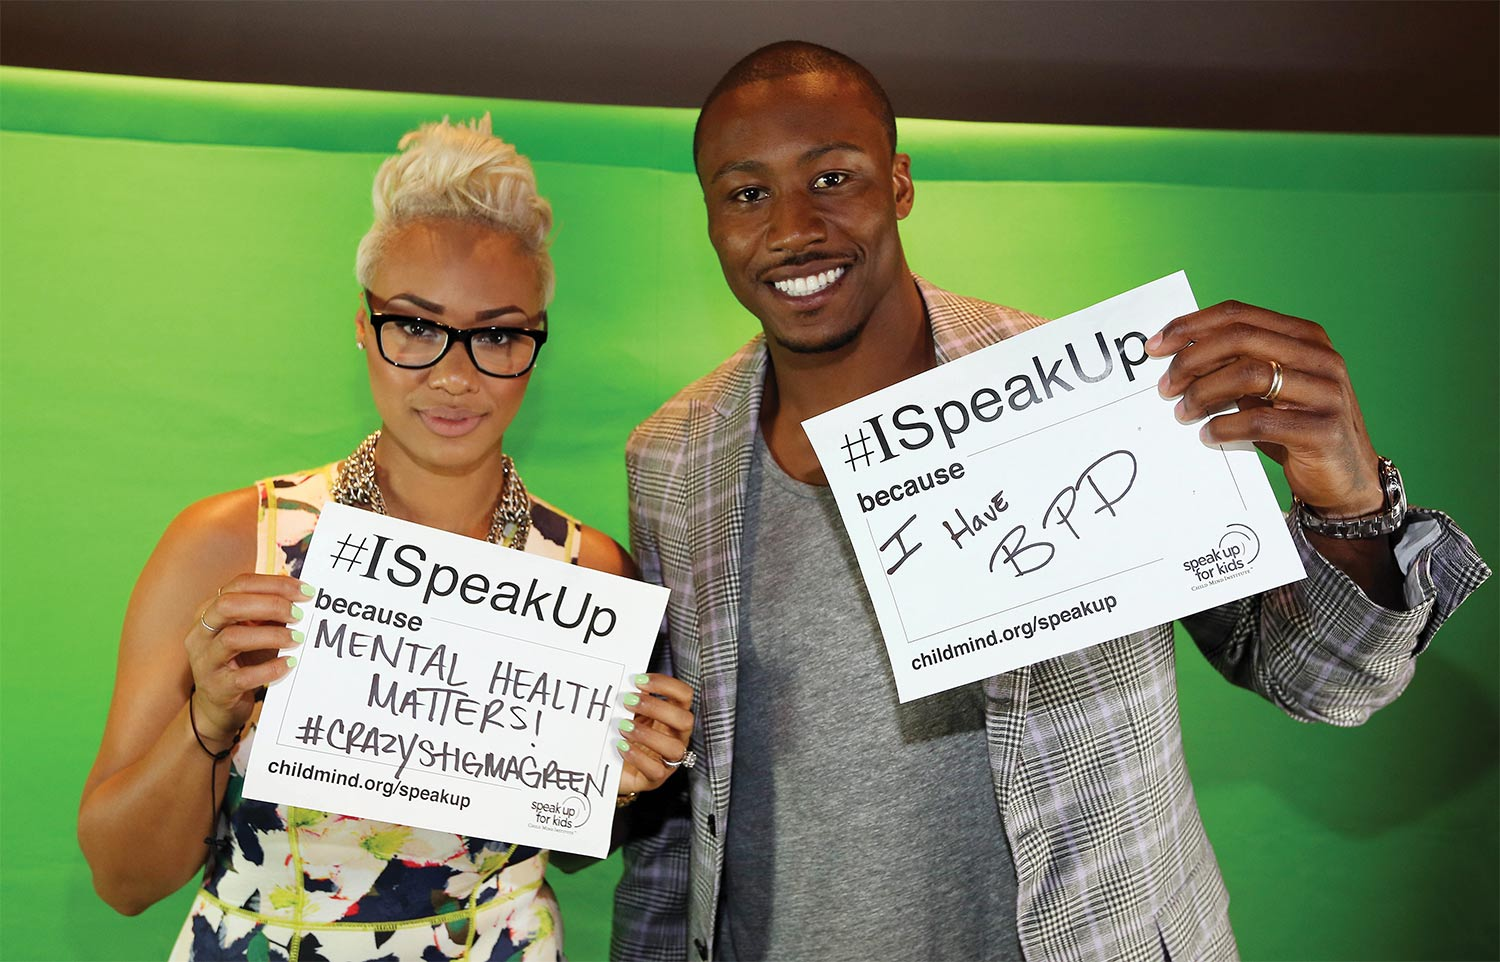 A man and a woman hold up signs against a green background.